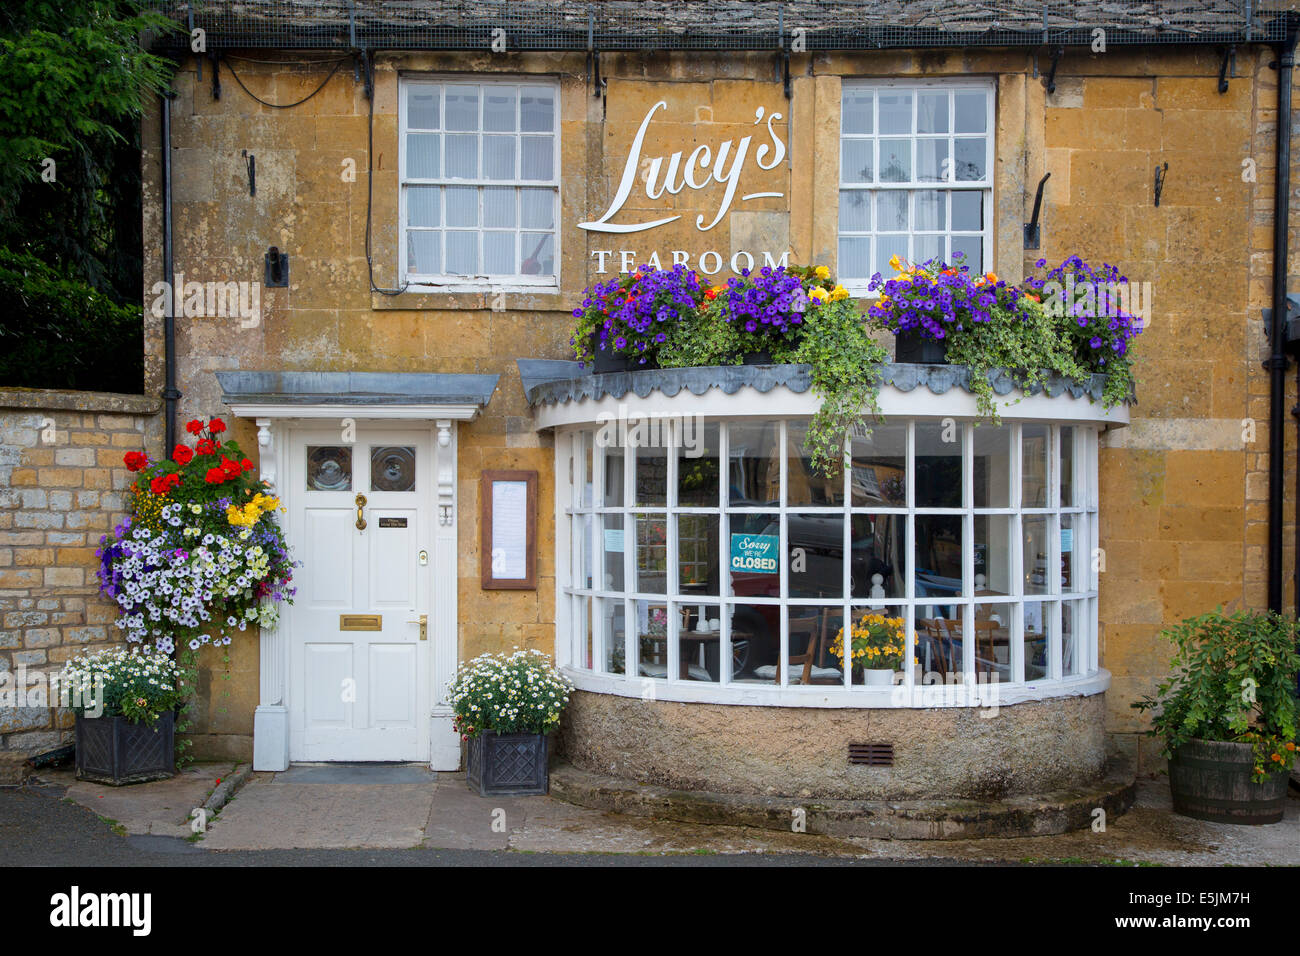 Lucy's Tearoom in Stow-on-the-Wold, the Cotswolds, Gloucestershire, England Stock Photo